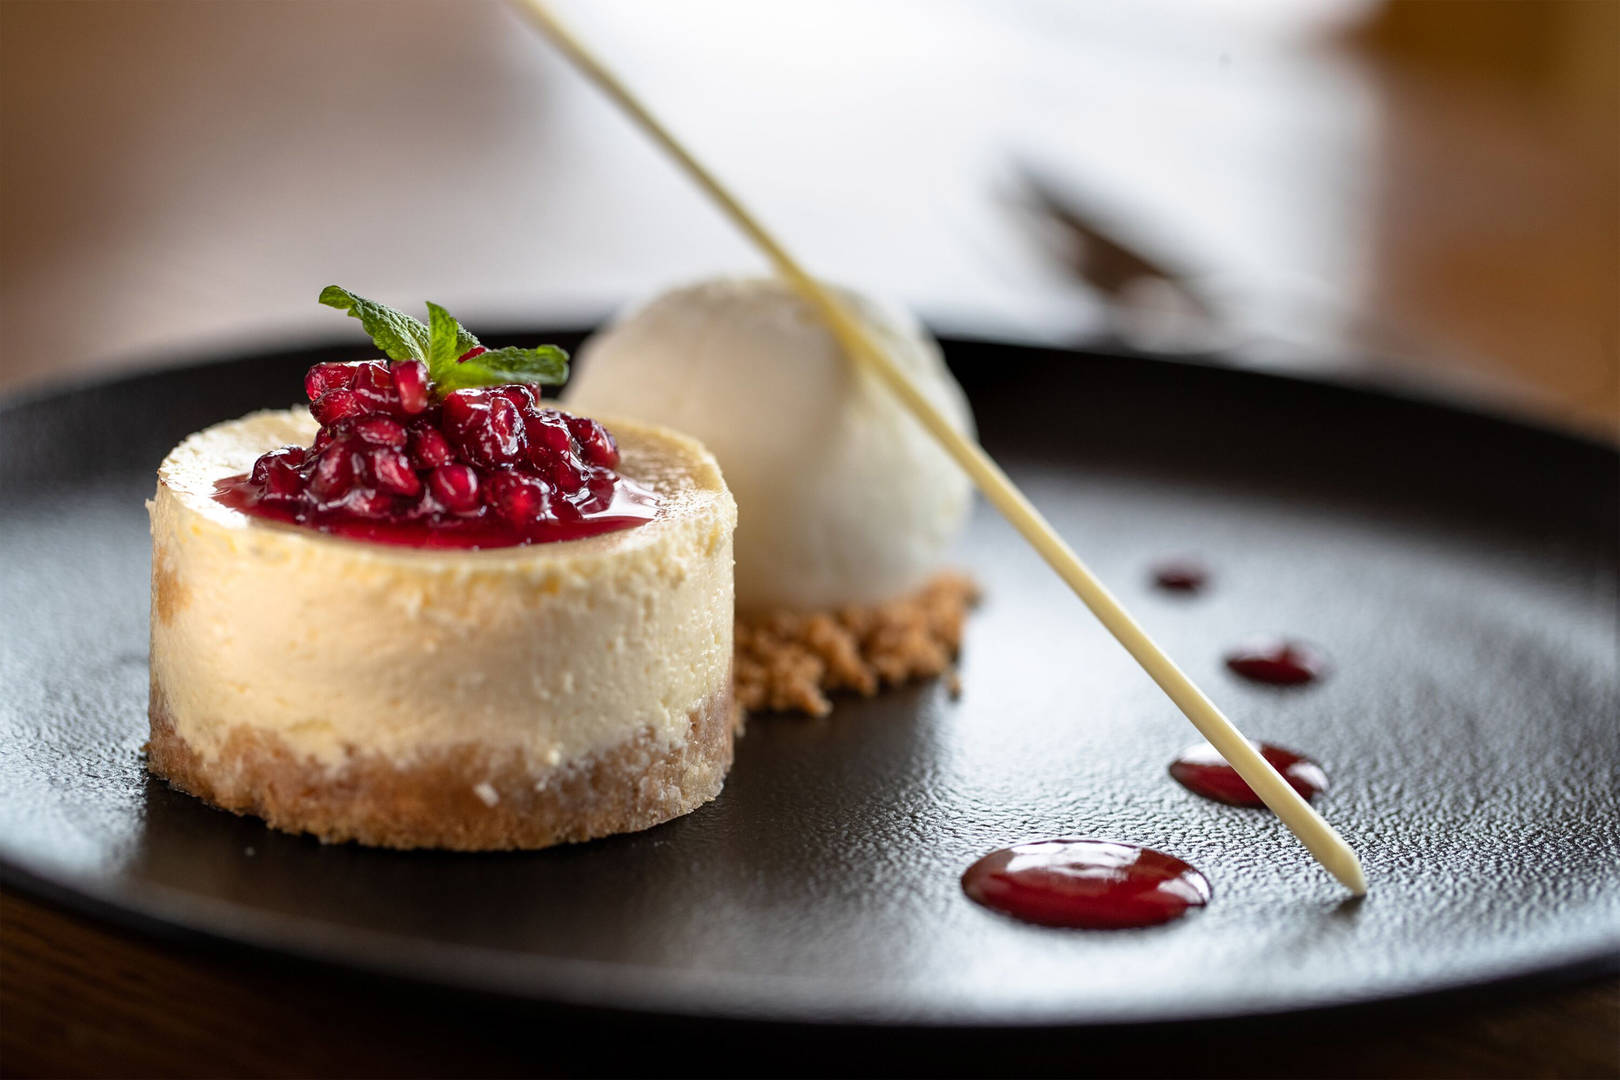 Cheese cake at Jumeirah Lowndes Hotel bar and kitchen